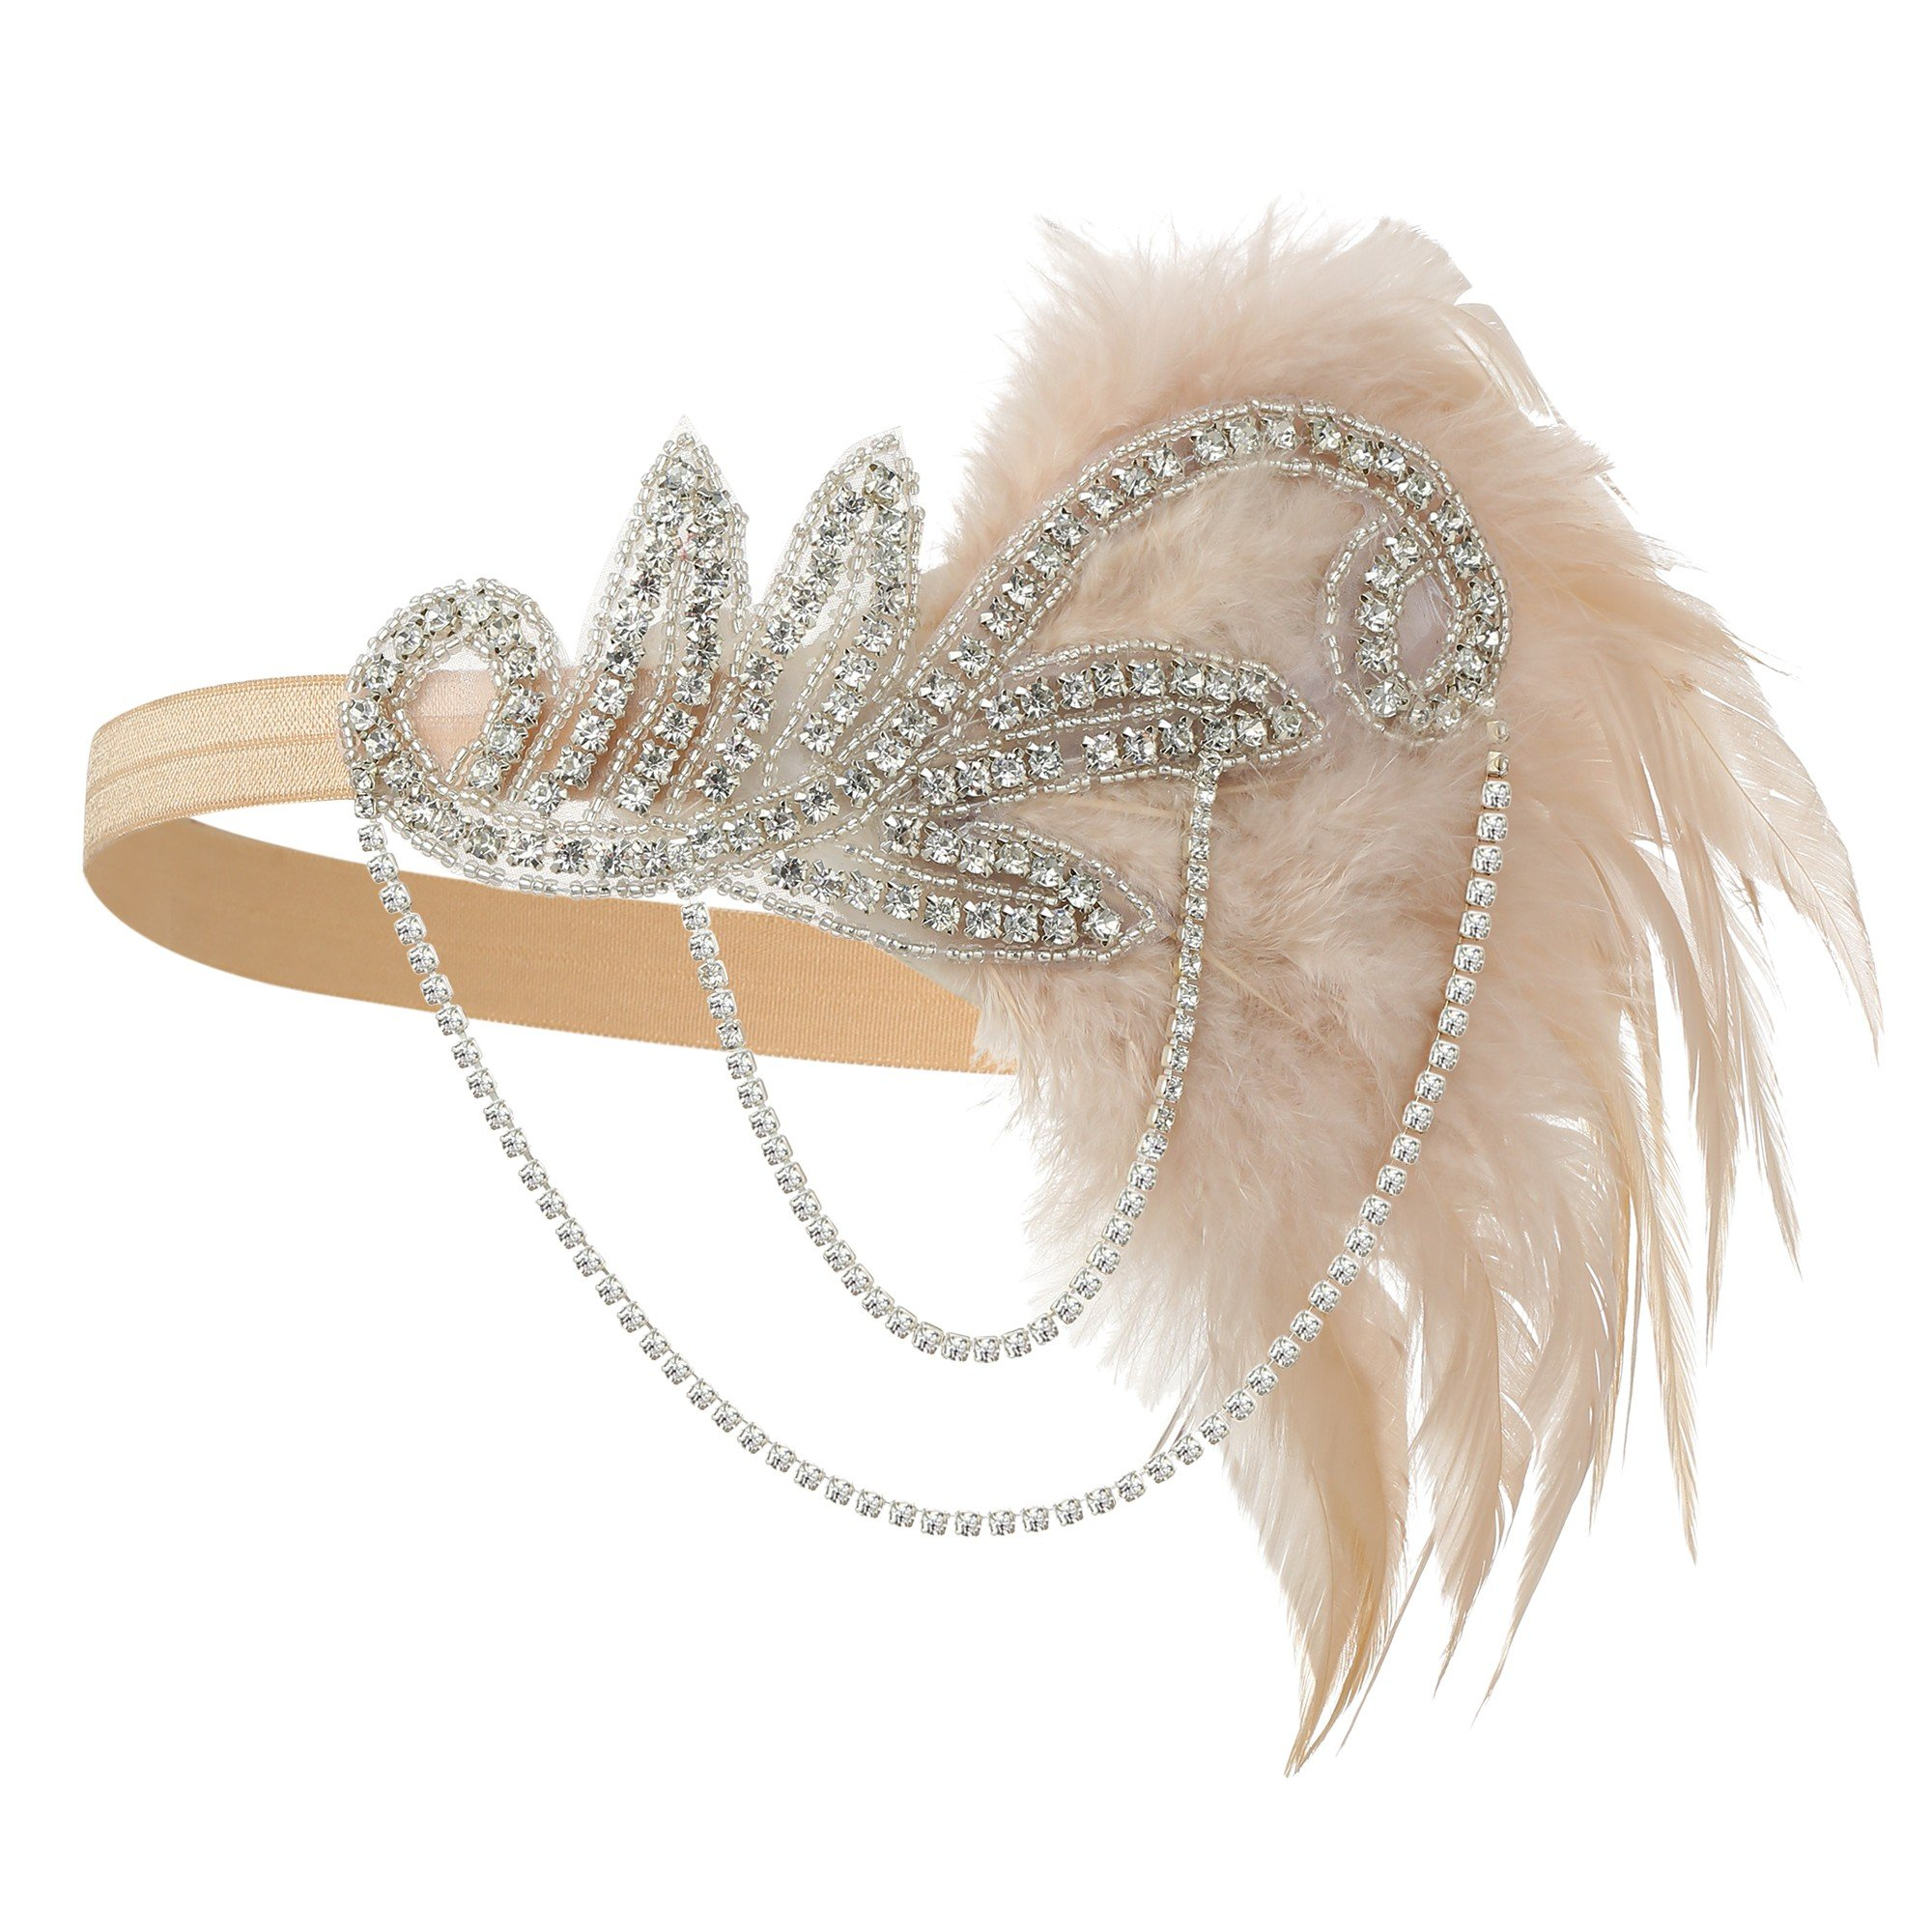 1920s Gatsby Flapper Feather Headband 20s Accessories Crystal Beaded Wedding Headpiece (1-Pink) by Zivyes